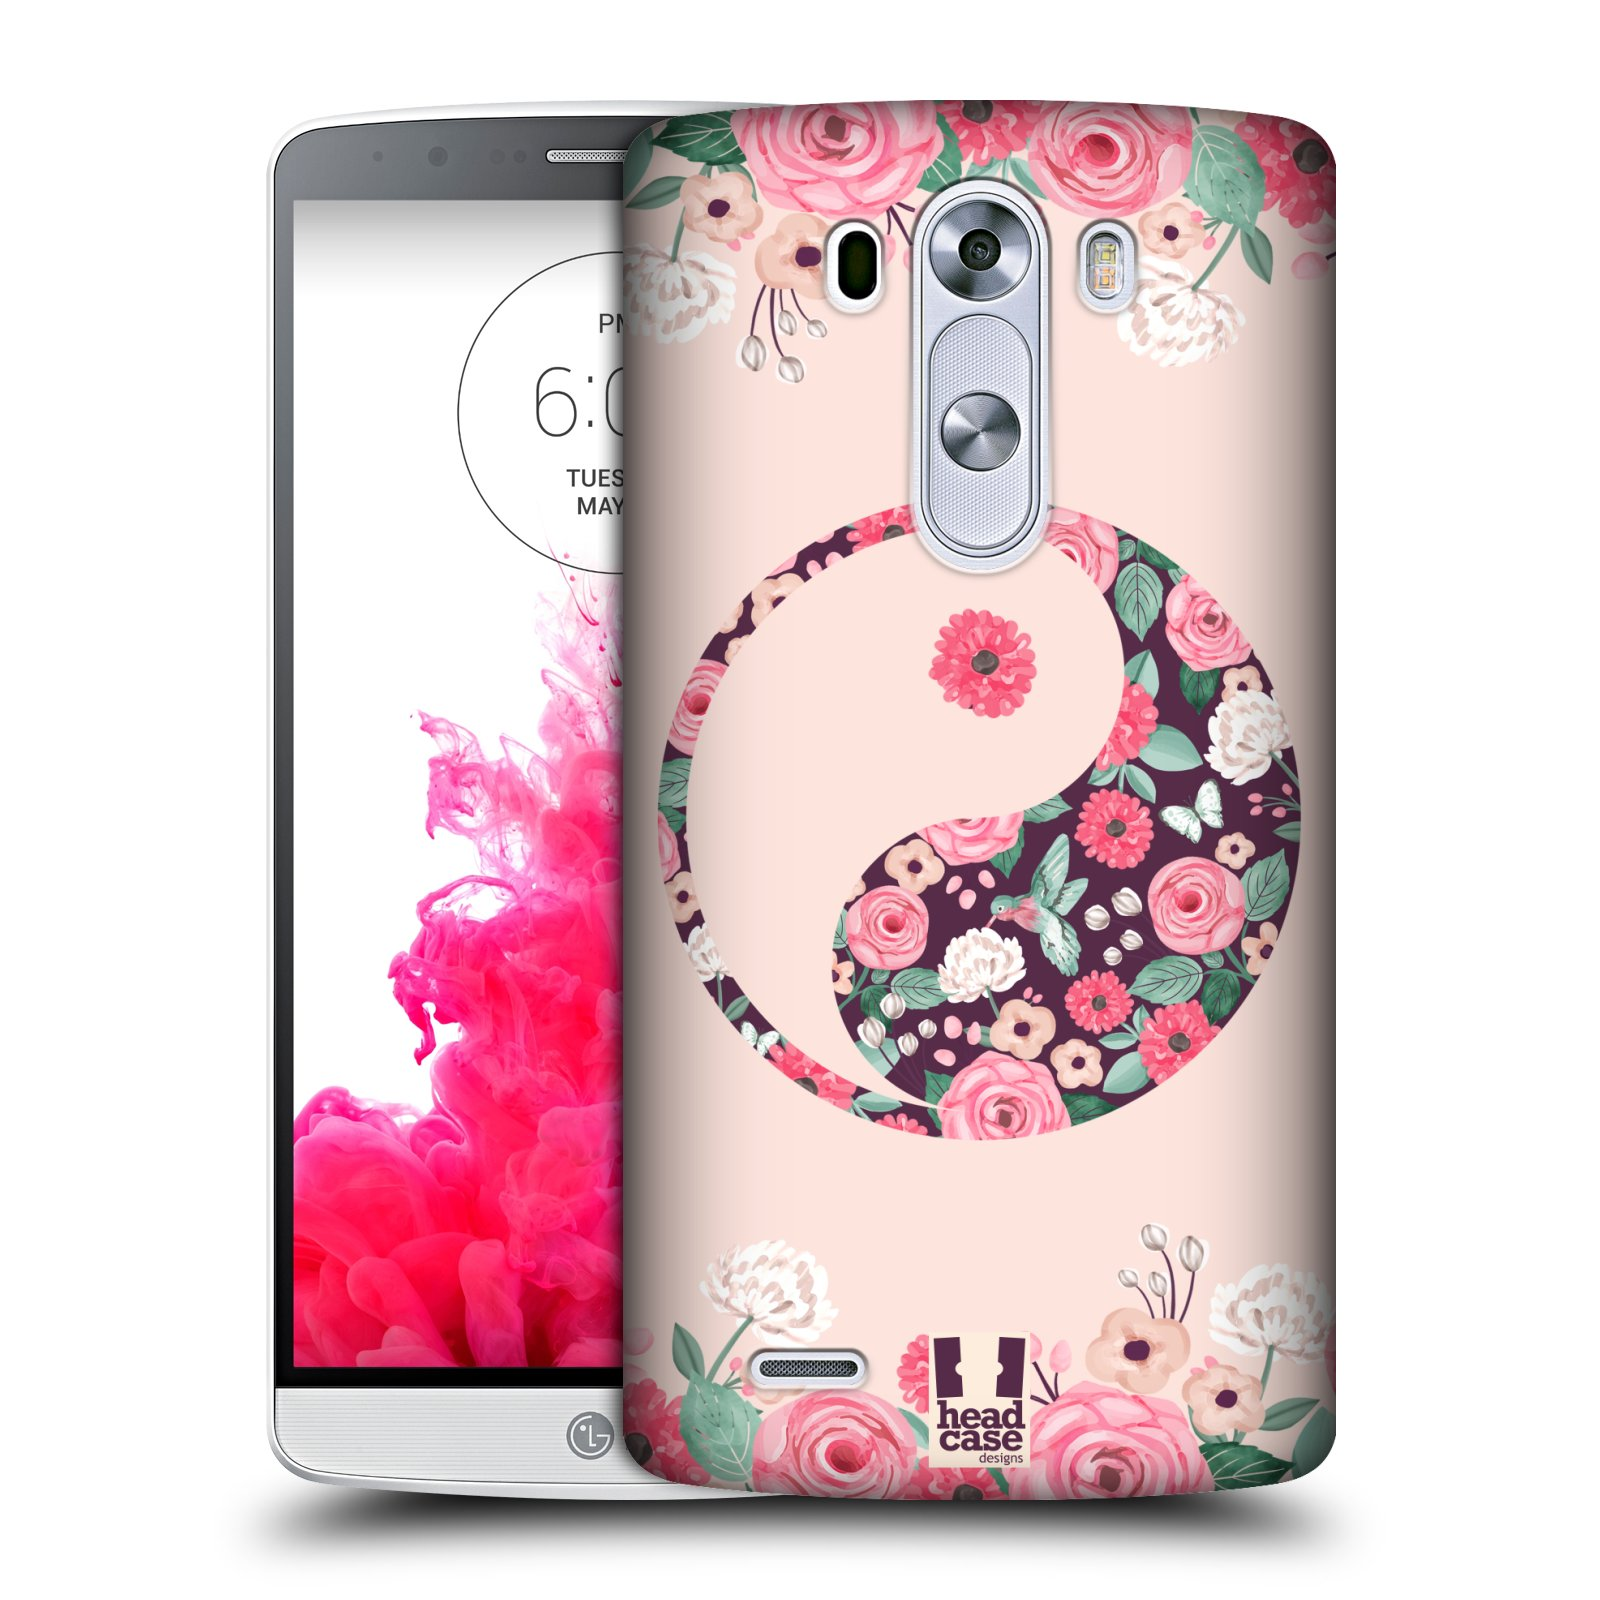 HEAD CASE DESIGNS YIN AND YANG COLLECTION HARD BACK CASE FOR LG PHONES 1